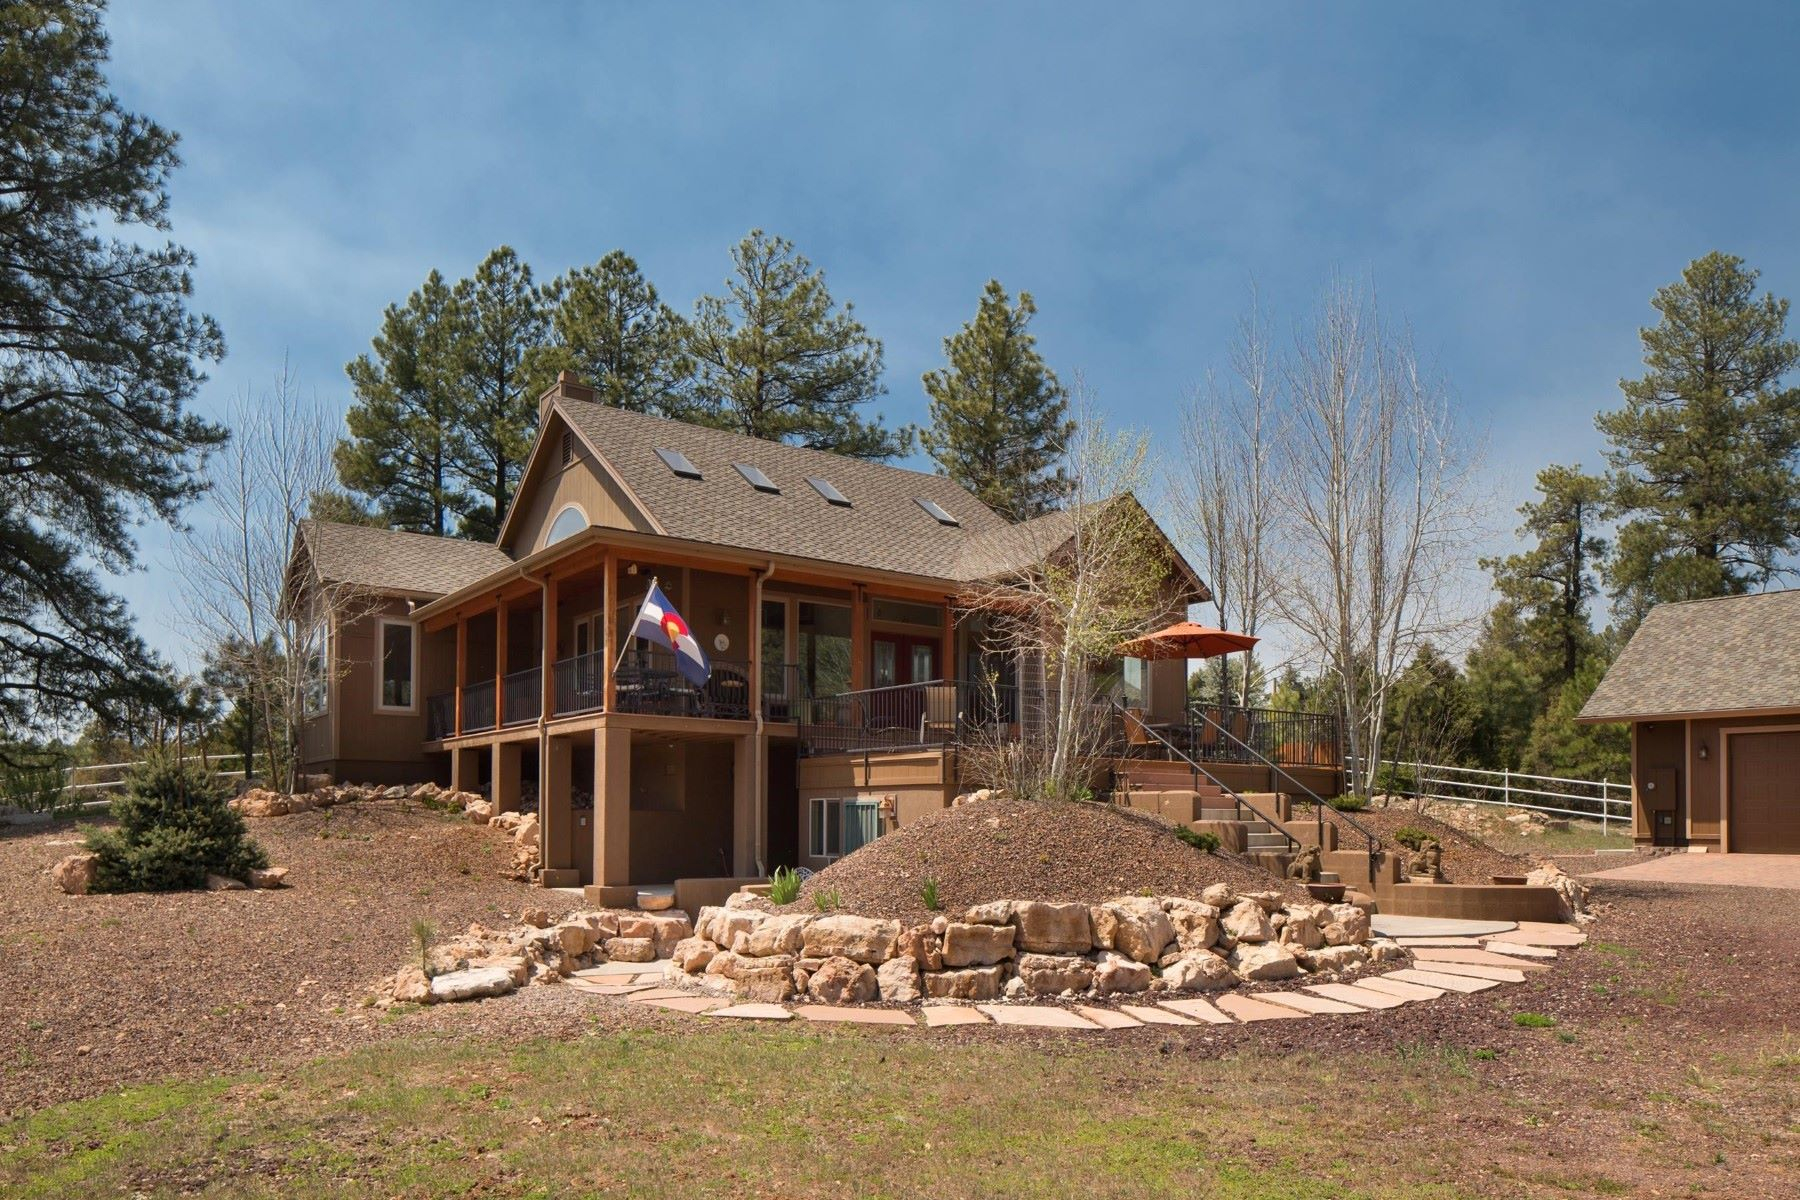 Moradia para Venda às Exclusive retreat in a mountain oasis 5600 Lake Mary Rd Flagstaff, Arizona, 86005 Estados Unidos